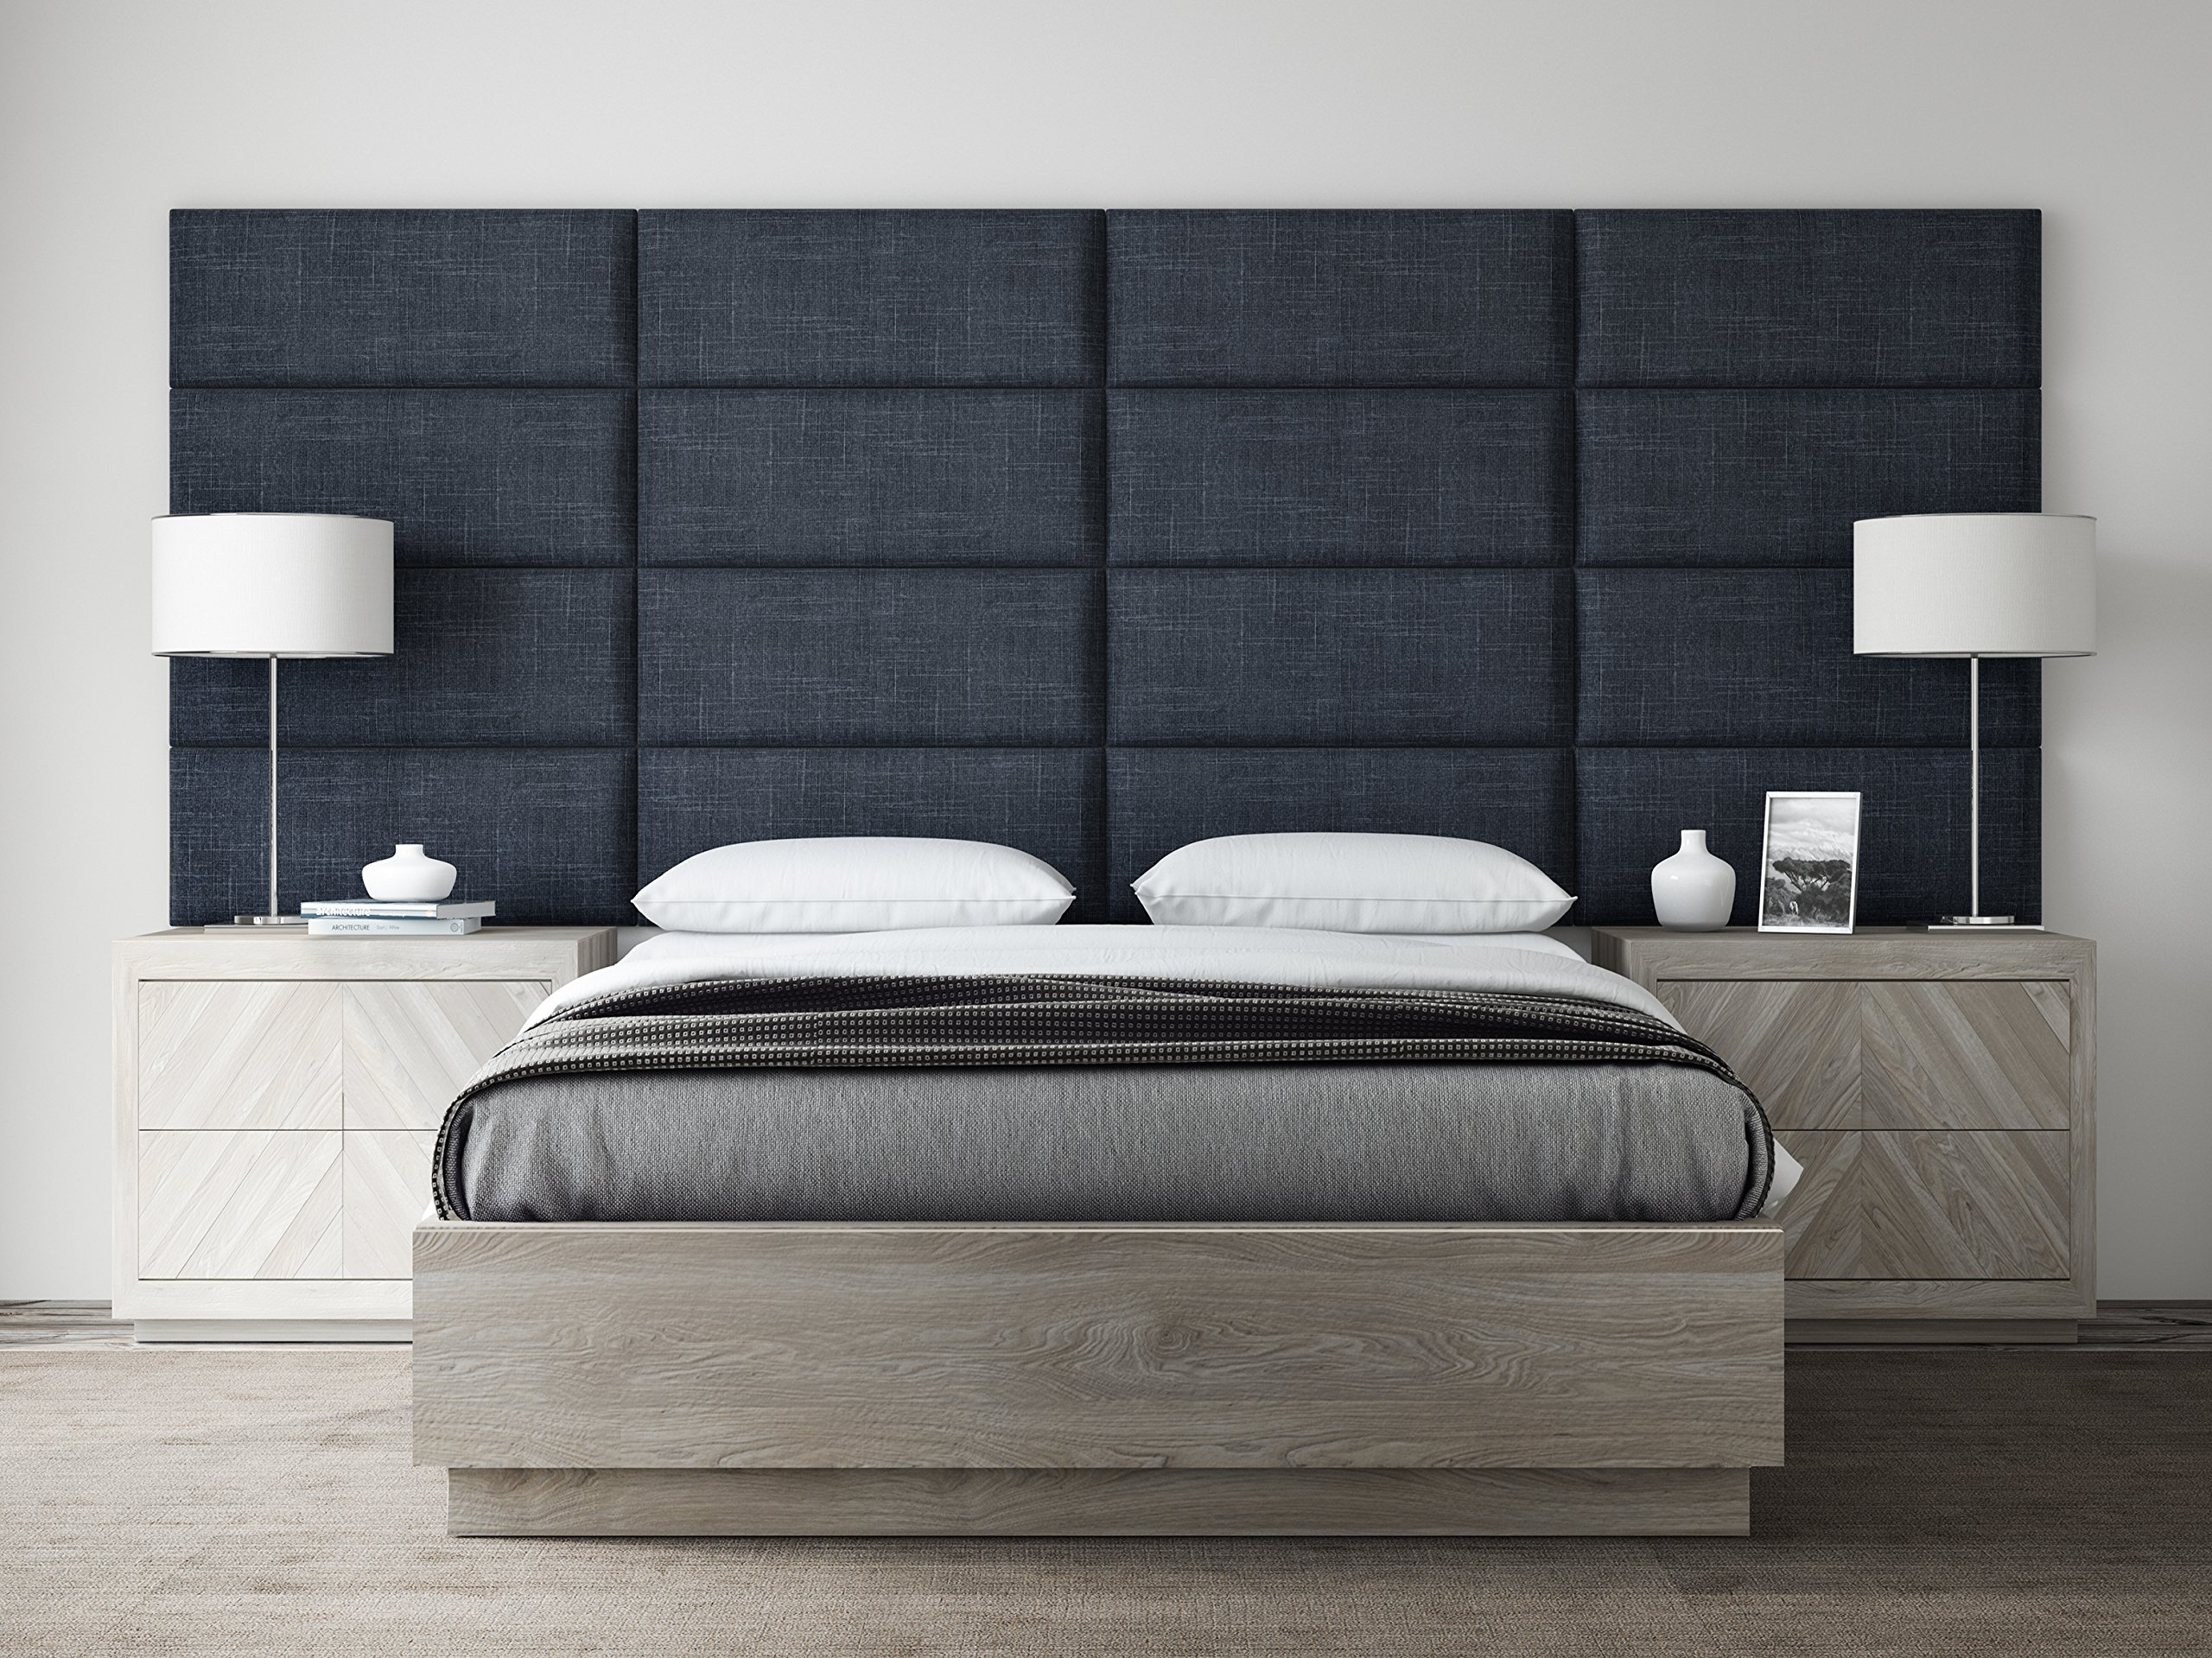 VANT Upholstered Headboards - Accent Wall Panels - Packs Of 4 - Textured Cotton Weave Midnight Blue - 30'' Wide x 11.5'' Height - Easy To Install - Full - Queen Size Headboard